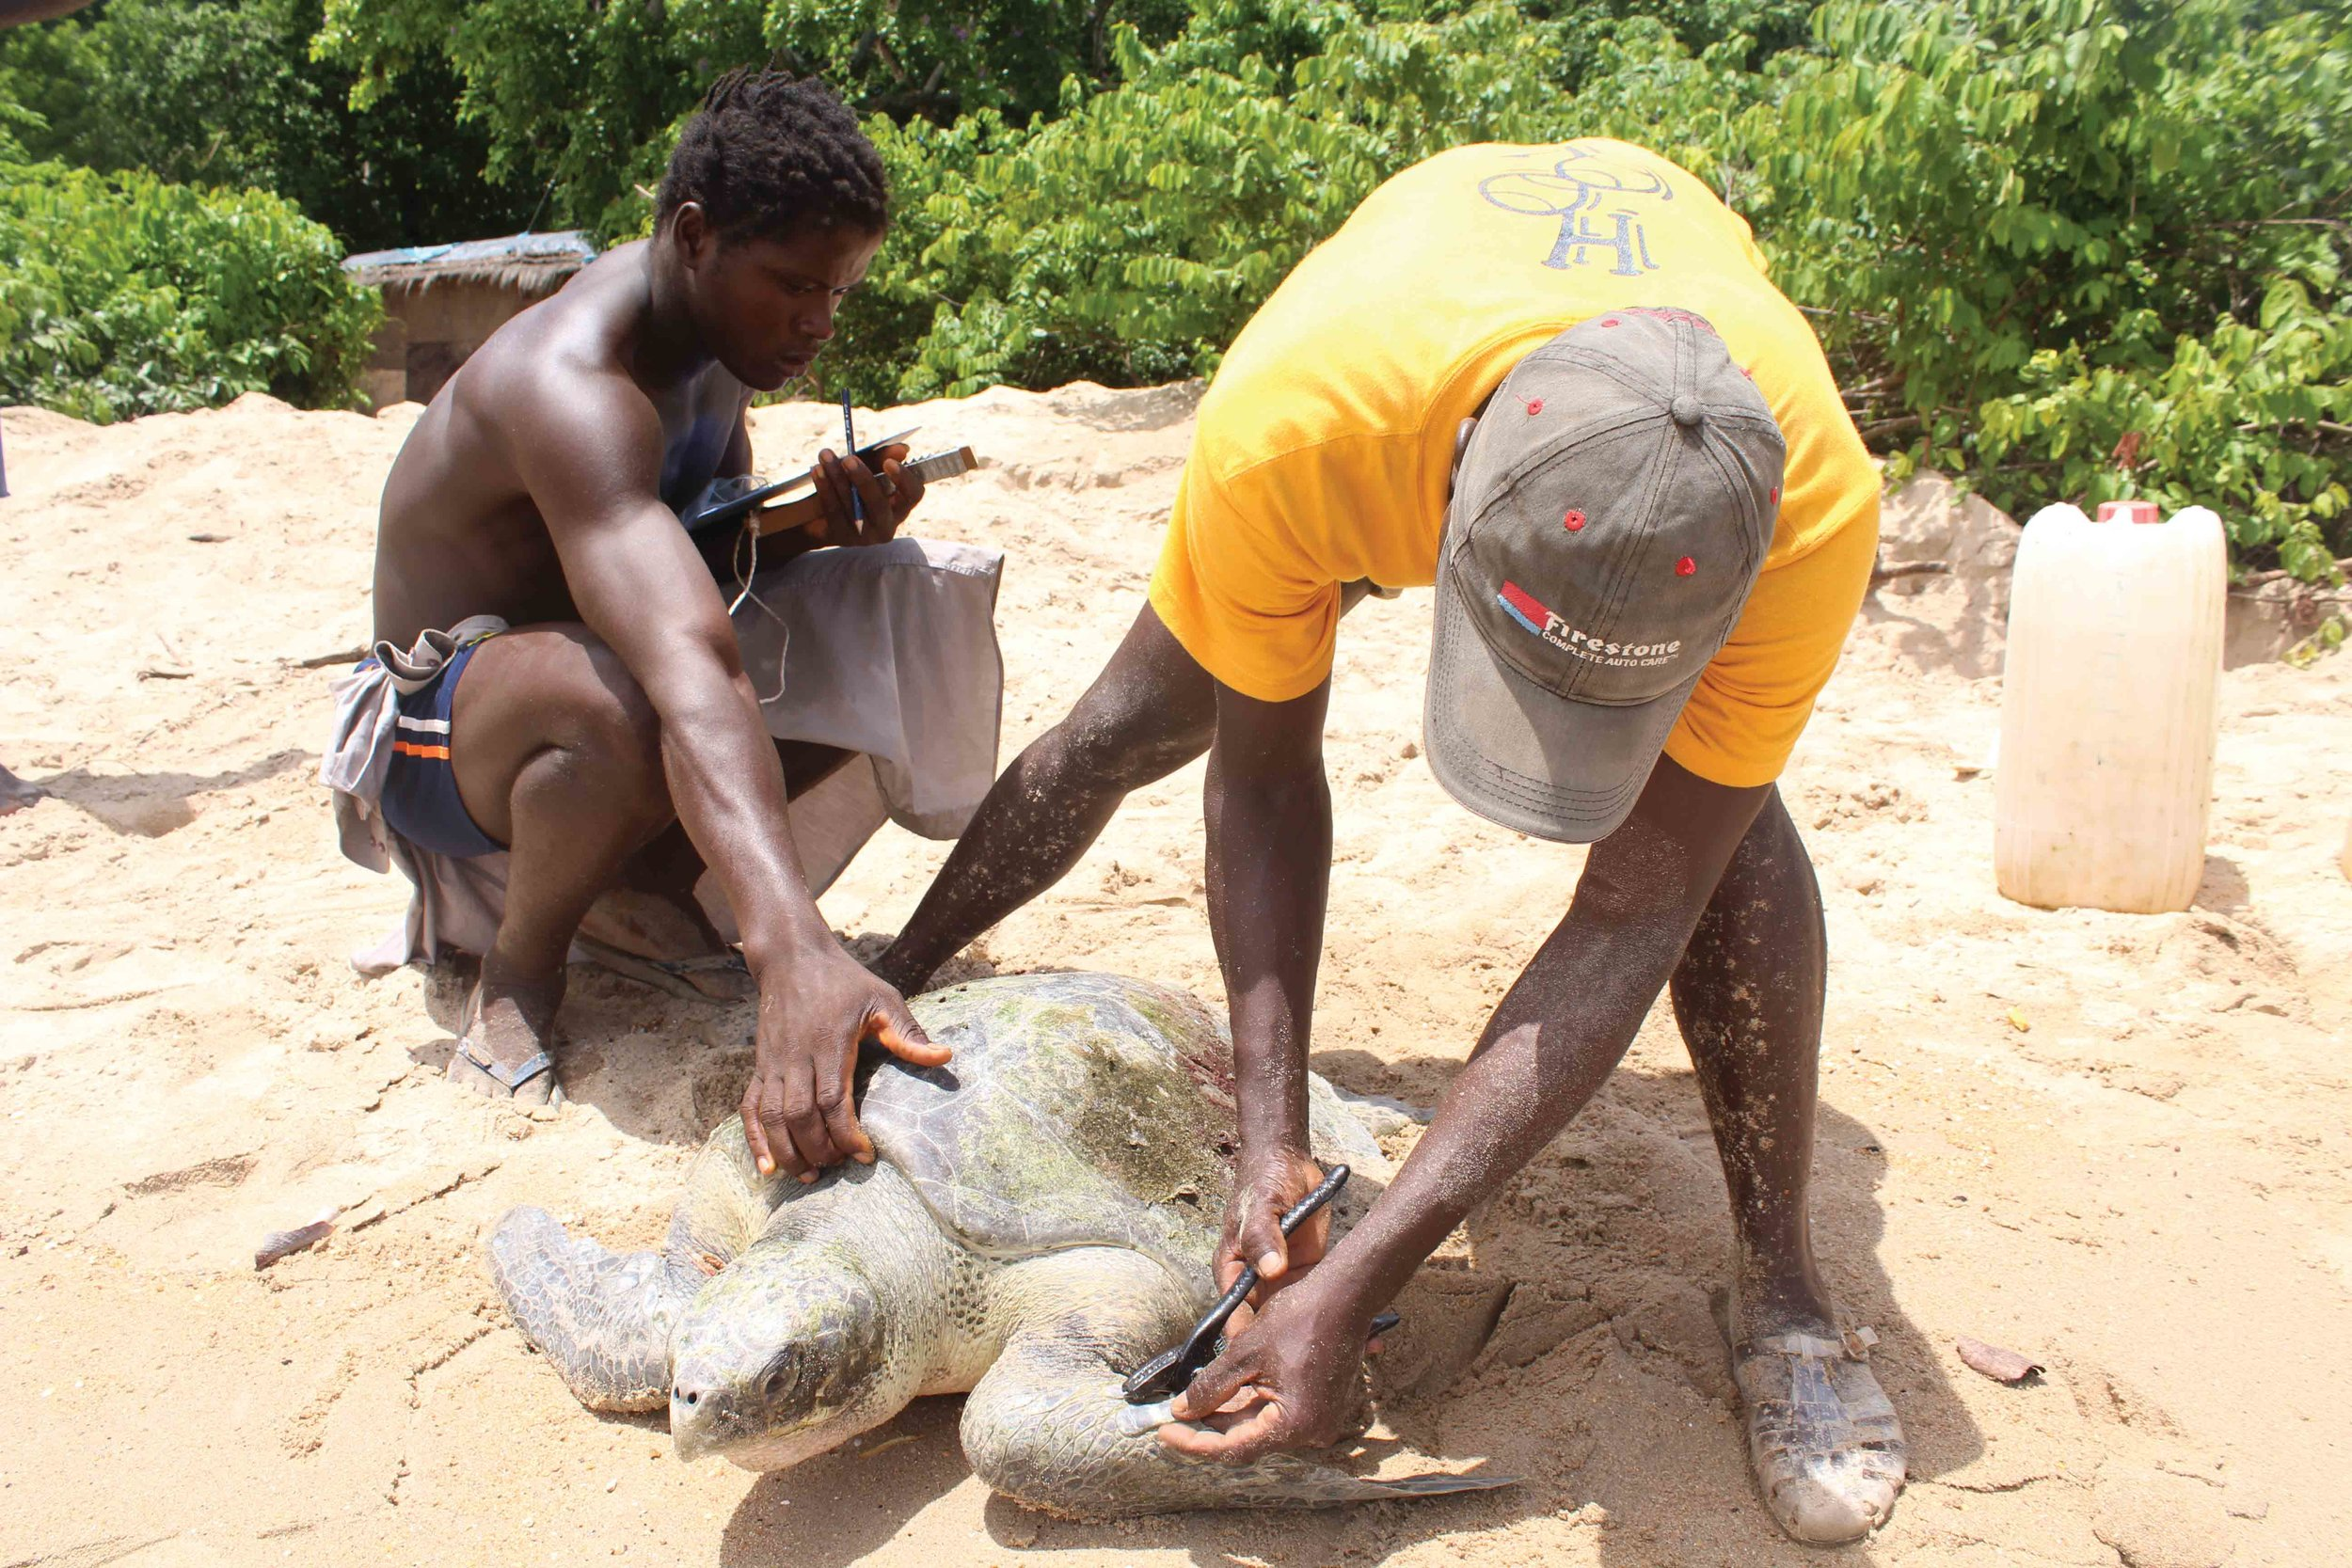 On the island of Poilão in Guinea-Bissau, rangers from João Vieira and Poilão National Park tag an olive ridley turtle that was rescued after being tangled in a fishing net. © BETÂNIA FERREIRA